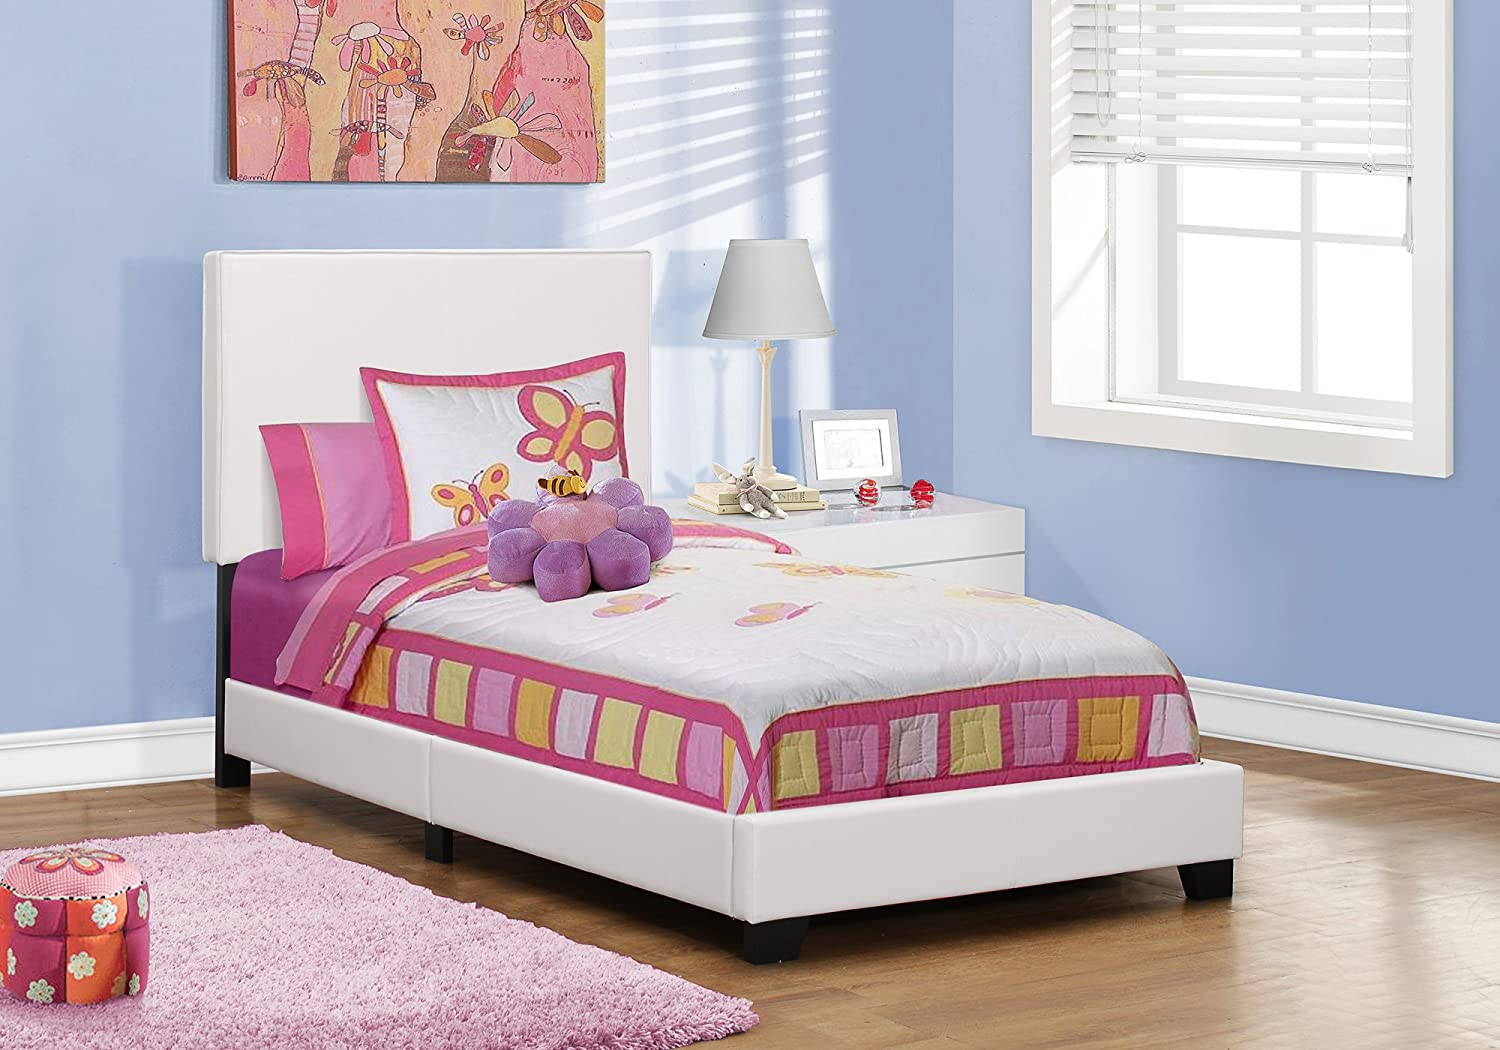 White Monarch Specialties I 5912T Bed with Leather Look Fabric, Twin, Grey